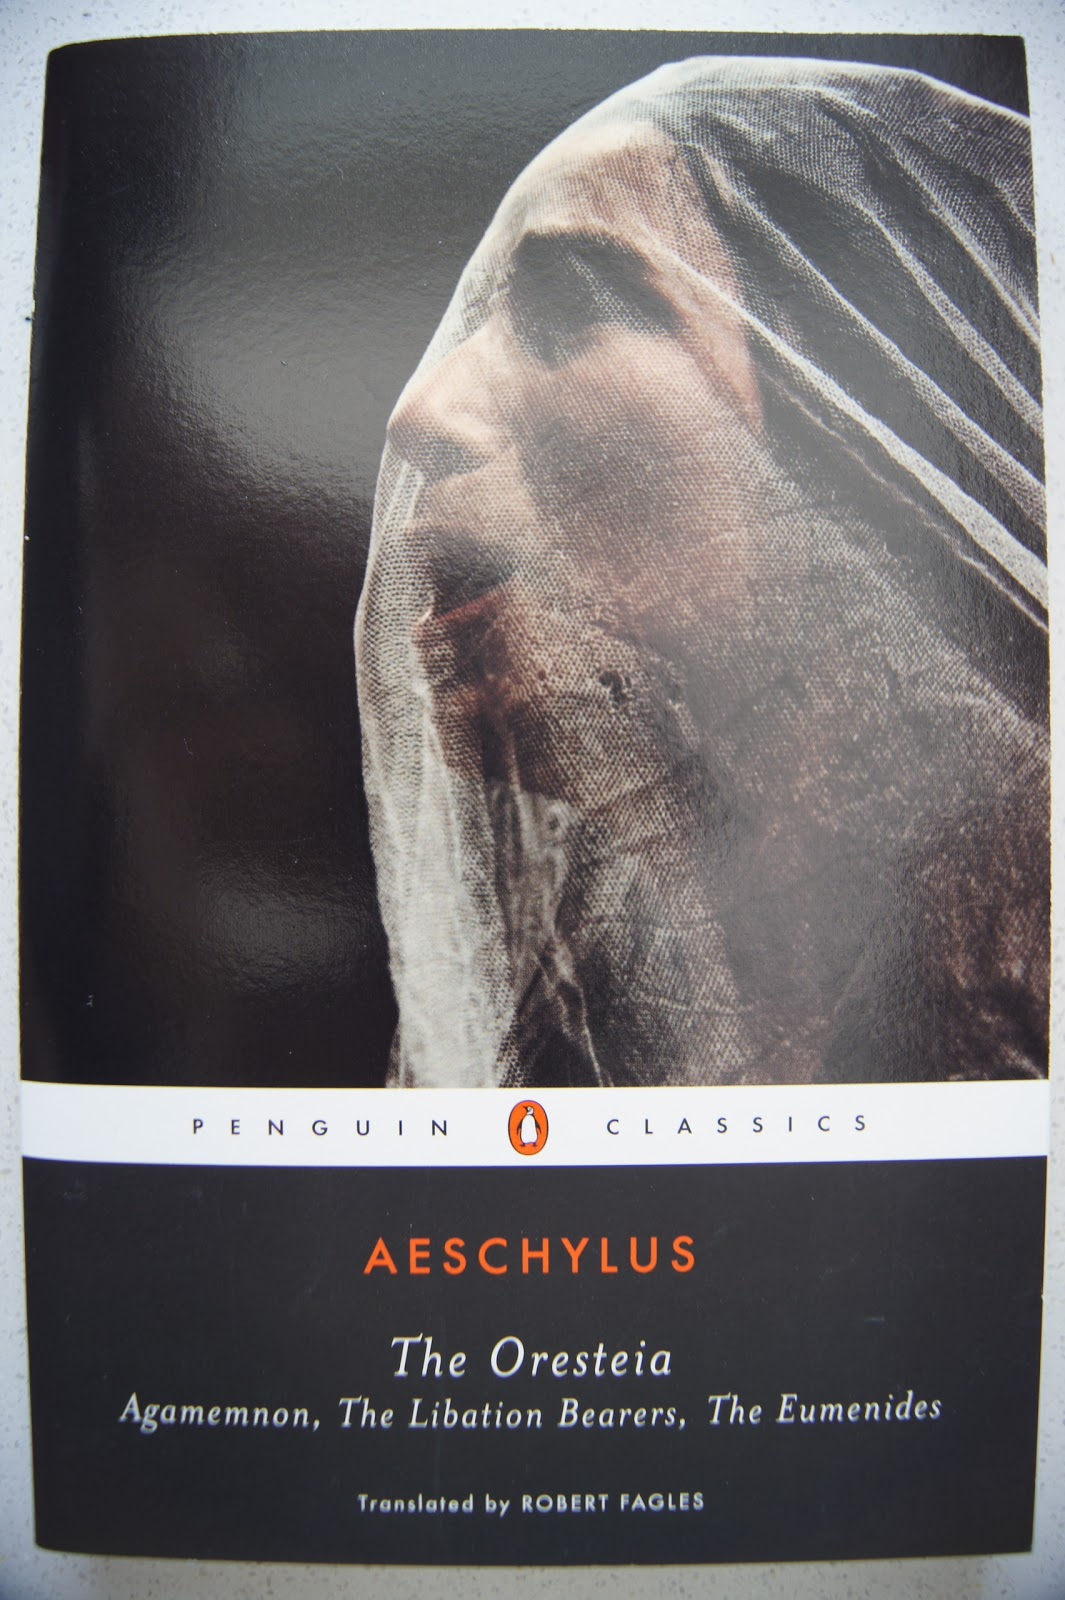 essays on oresteia Aeschylus oresteia - eumenides - importance of gender in aeschylus' oresteia | 1013075.